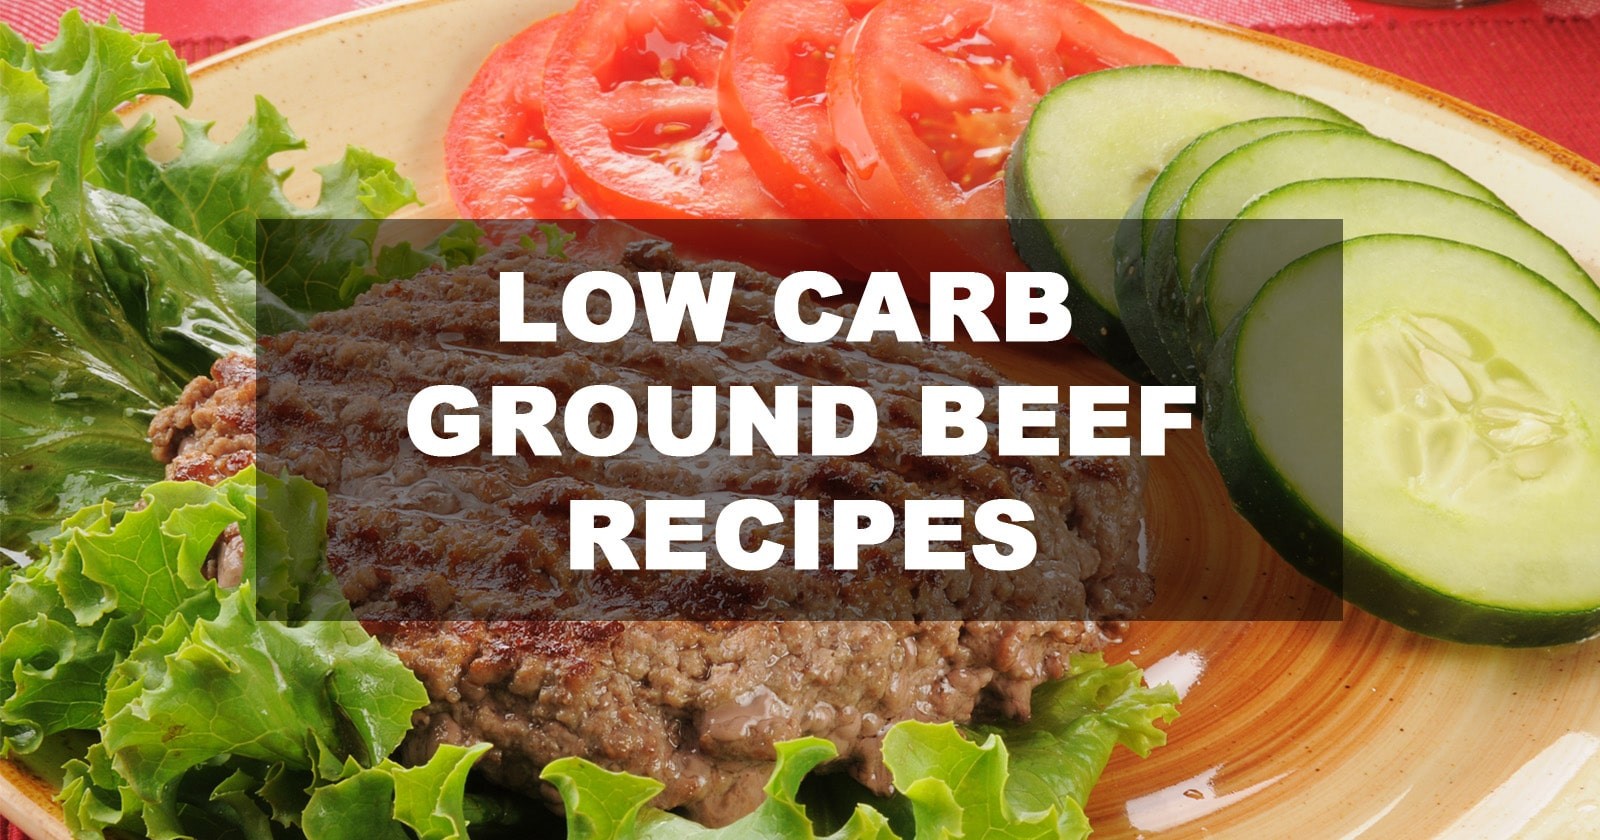 Low Carb Meat Recipes  Best Low Carb Ground Beef Recipes October 2018